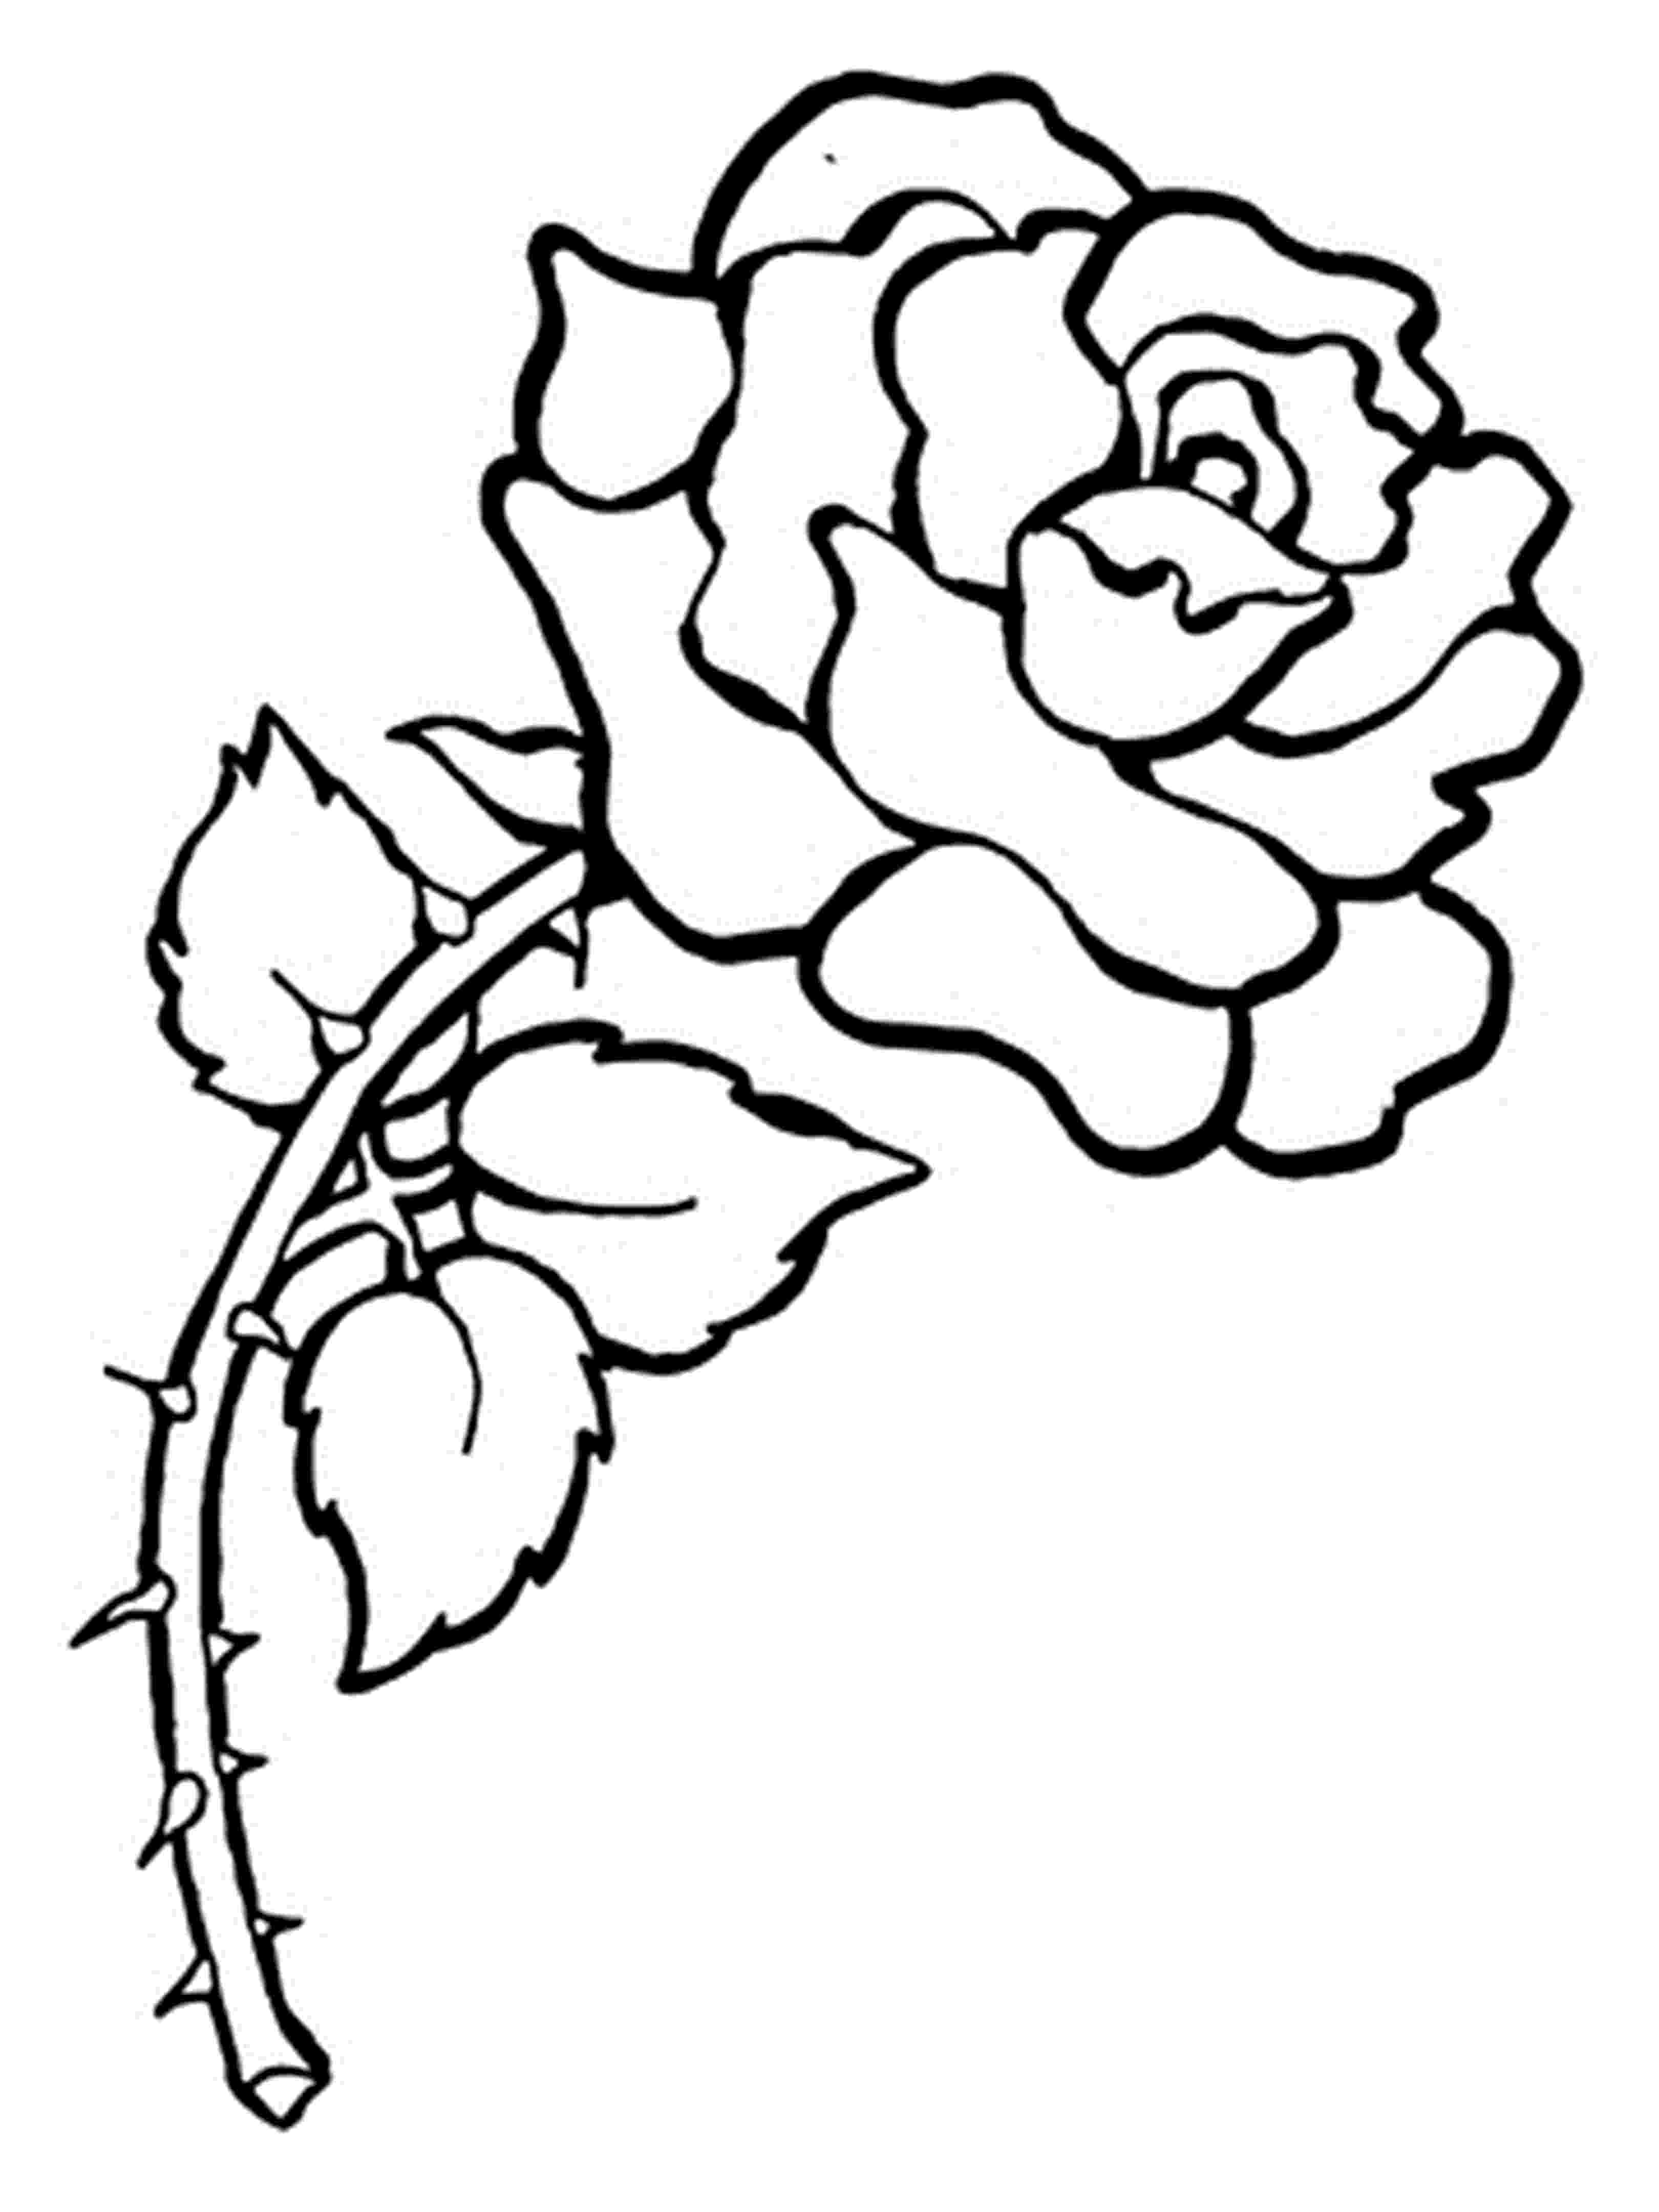 flowers coloring pages for kids print download some common variations of the flower kids pages coloring flowers for